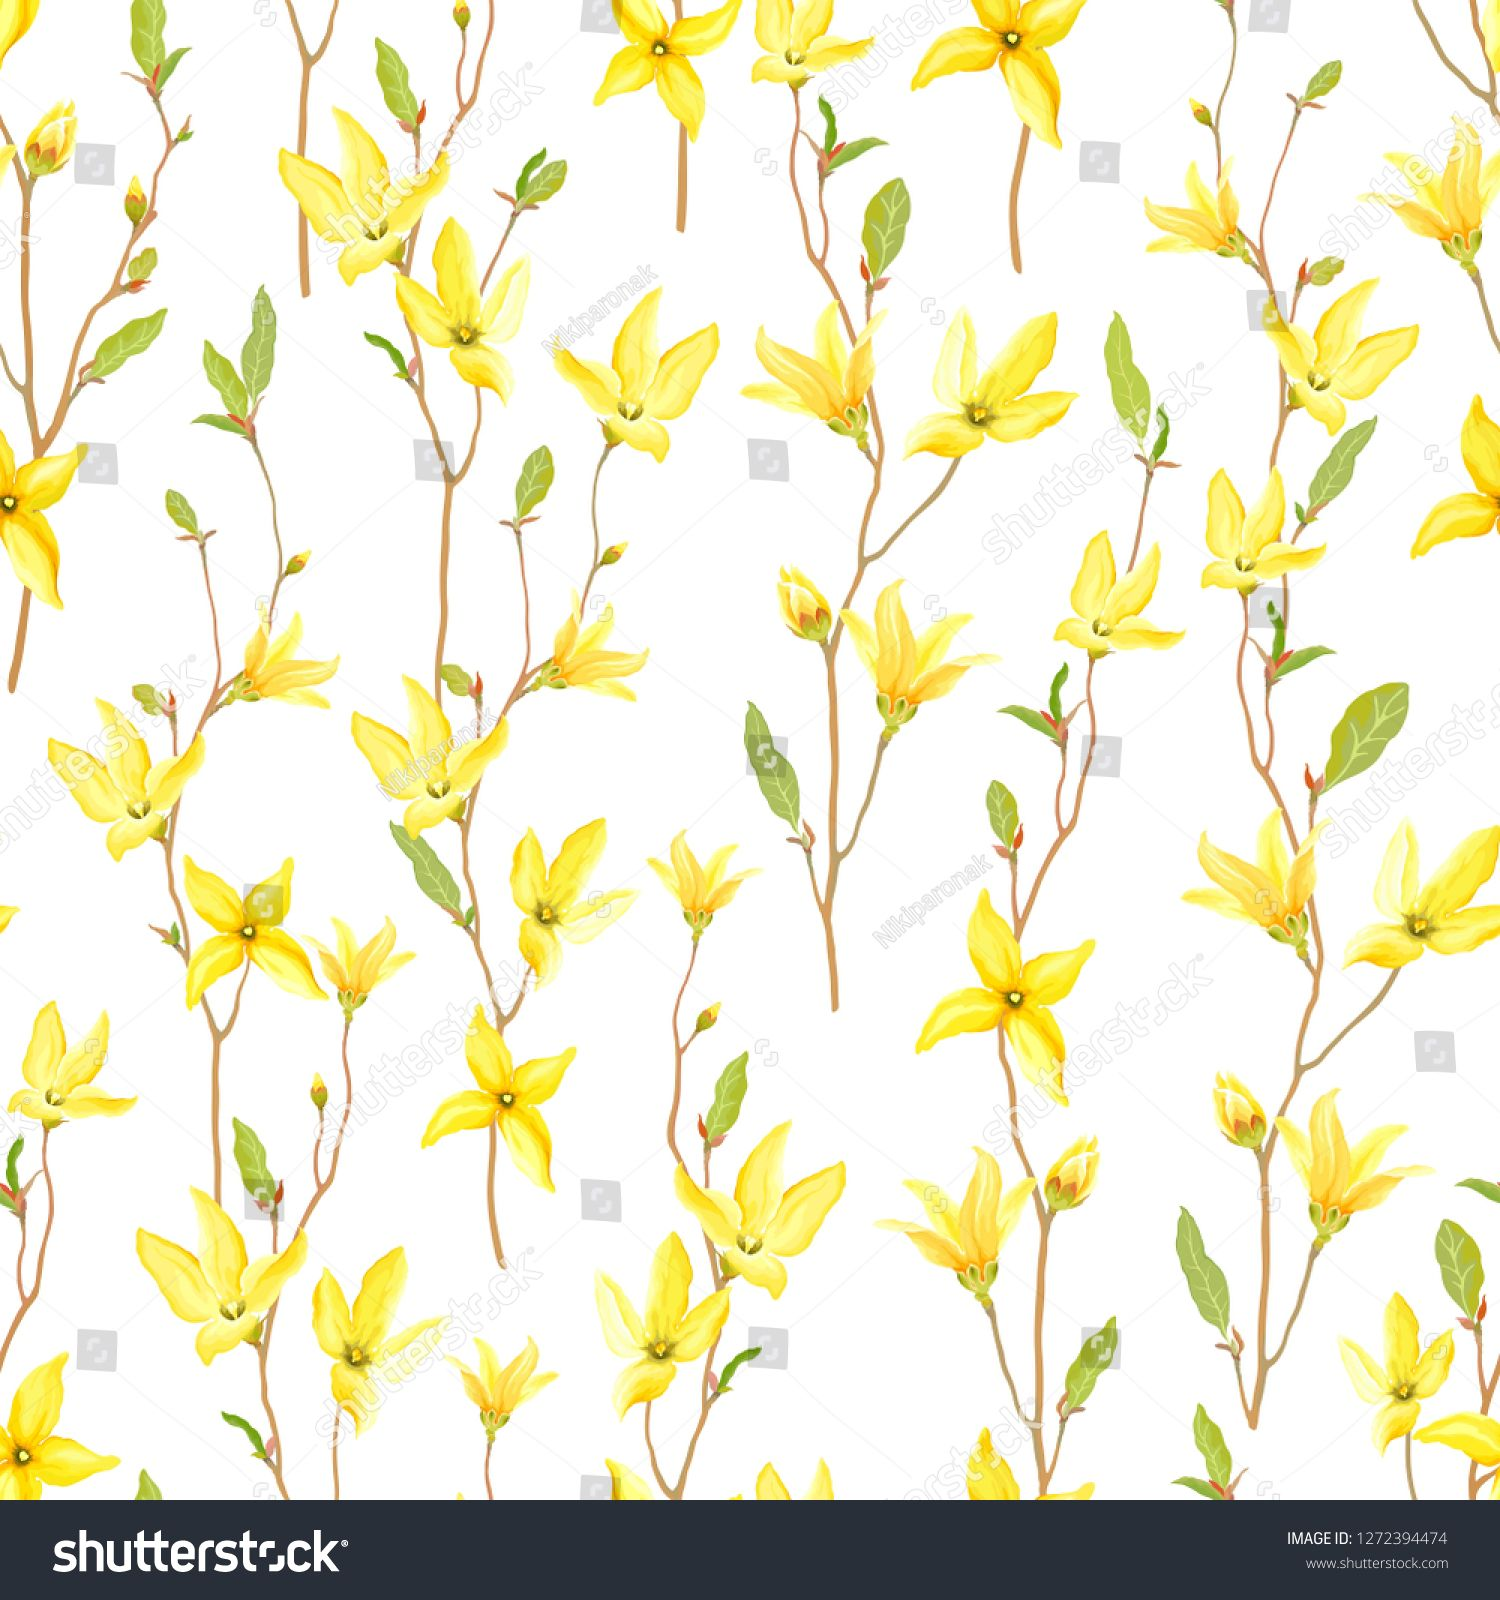 Seamless Floral Pattern With Blossoming Yellow Flowers And Green